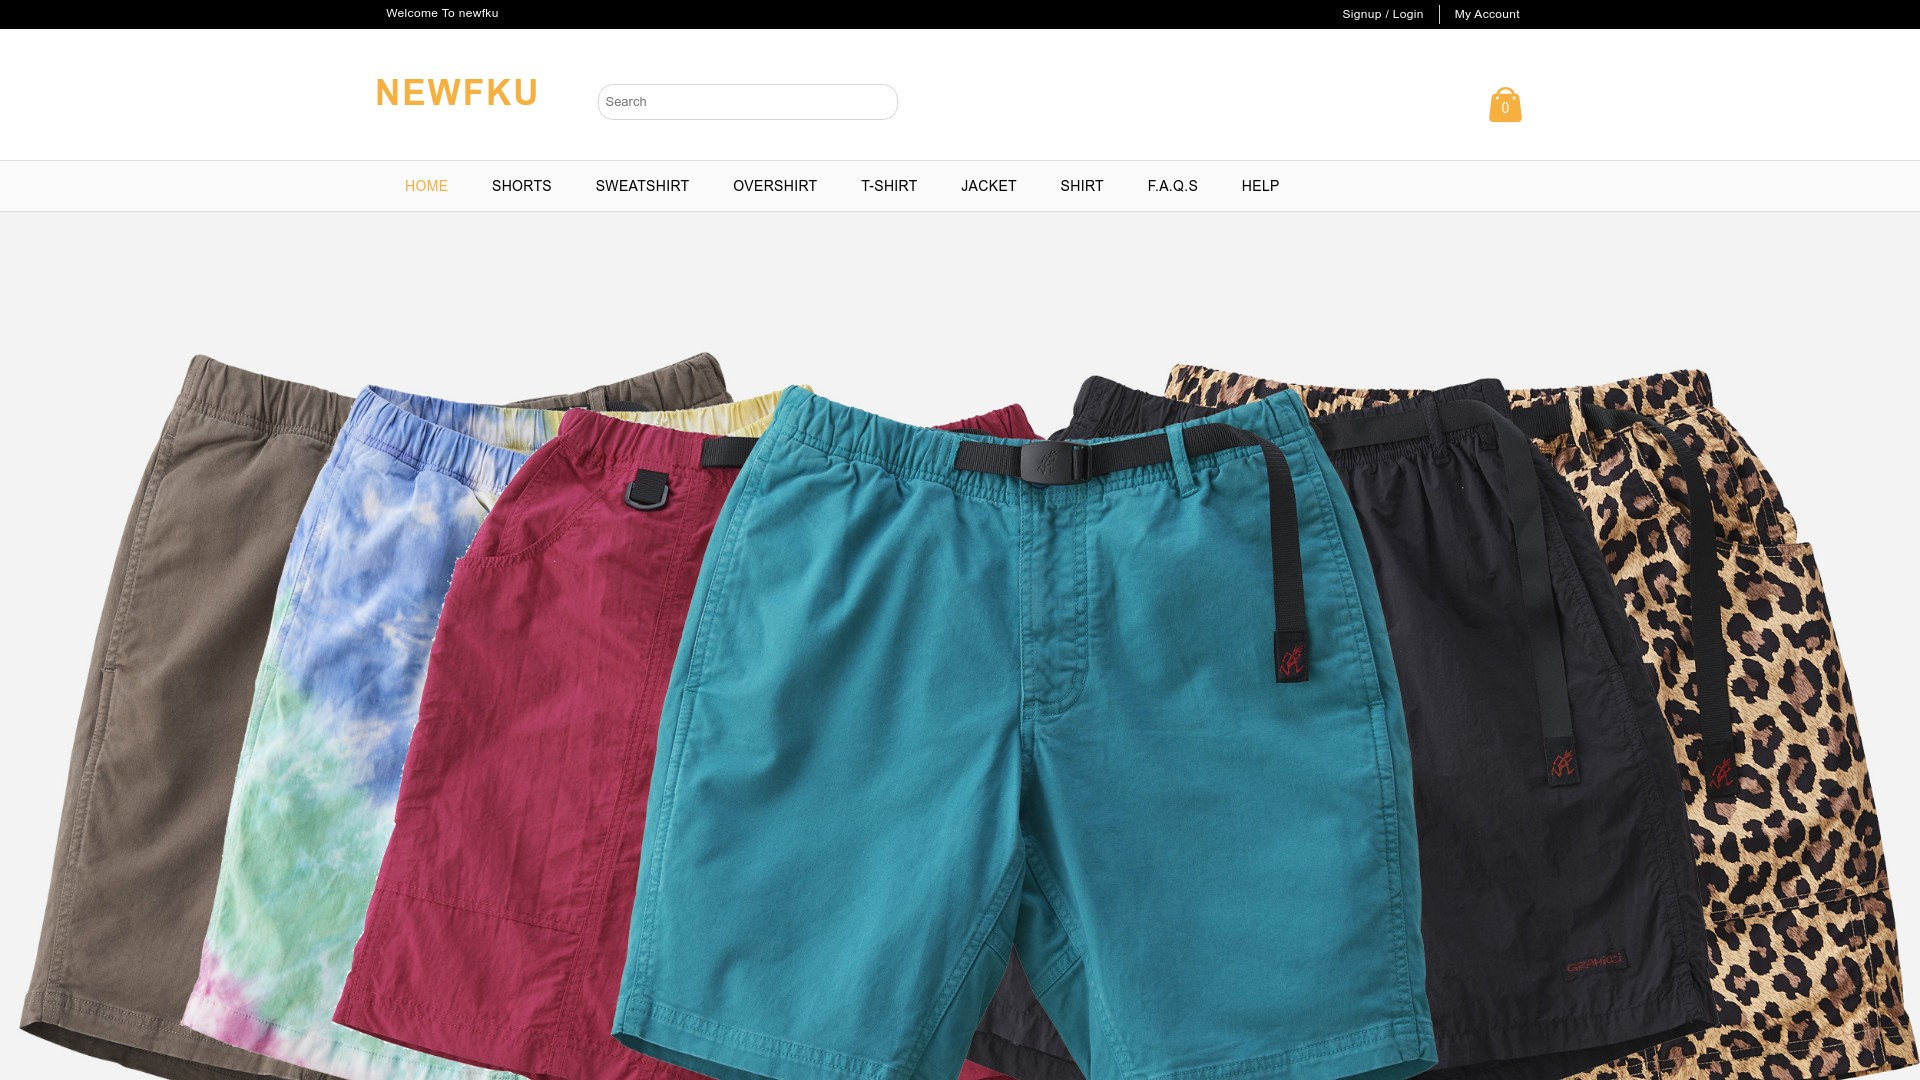 Is Newfku a Scam? Review of the Online Store